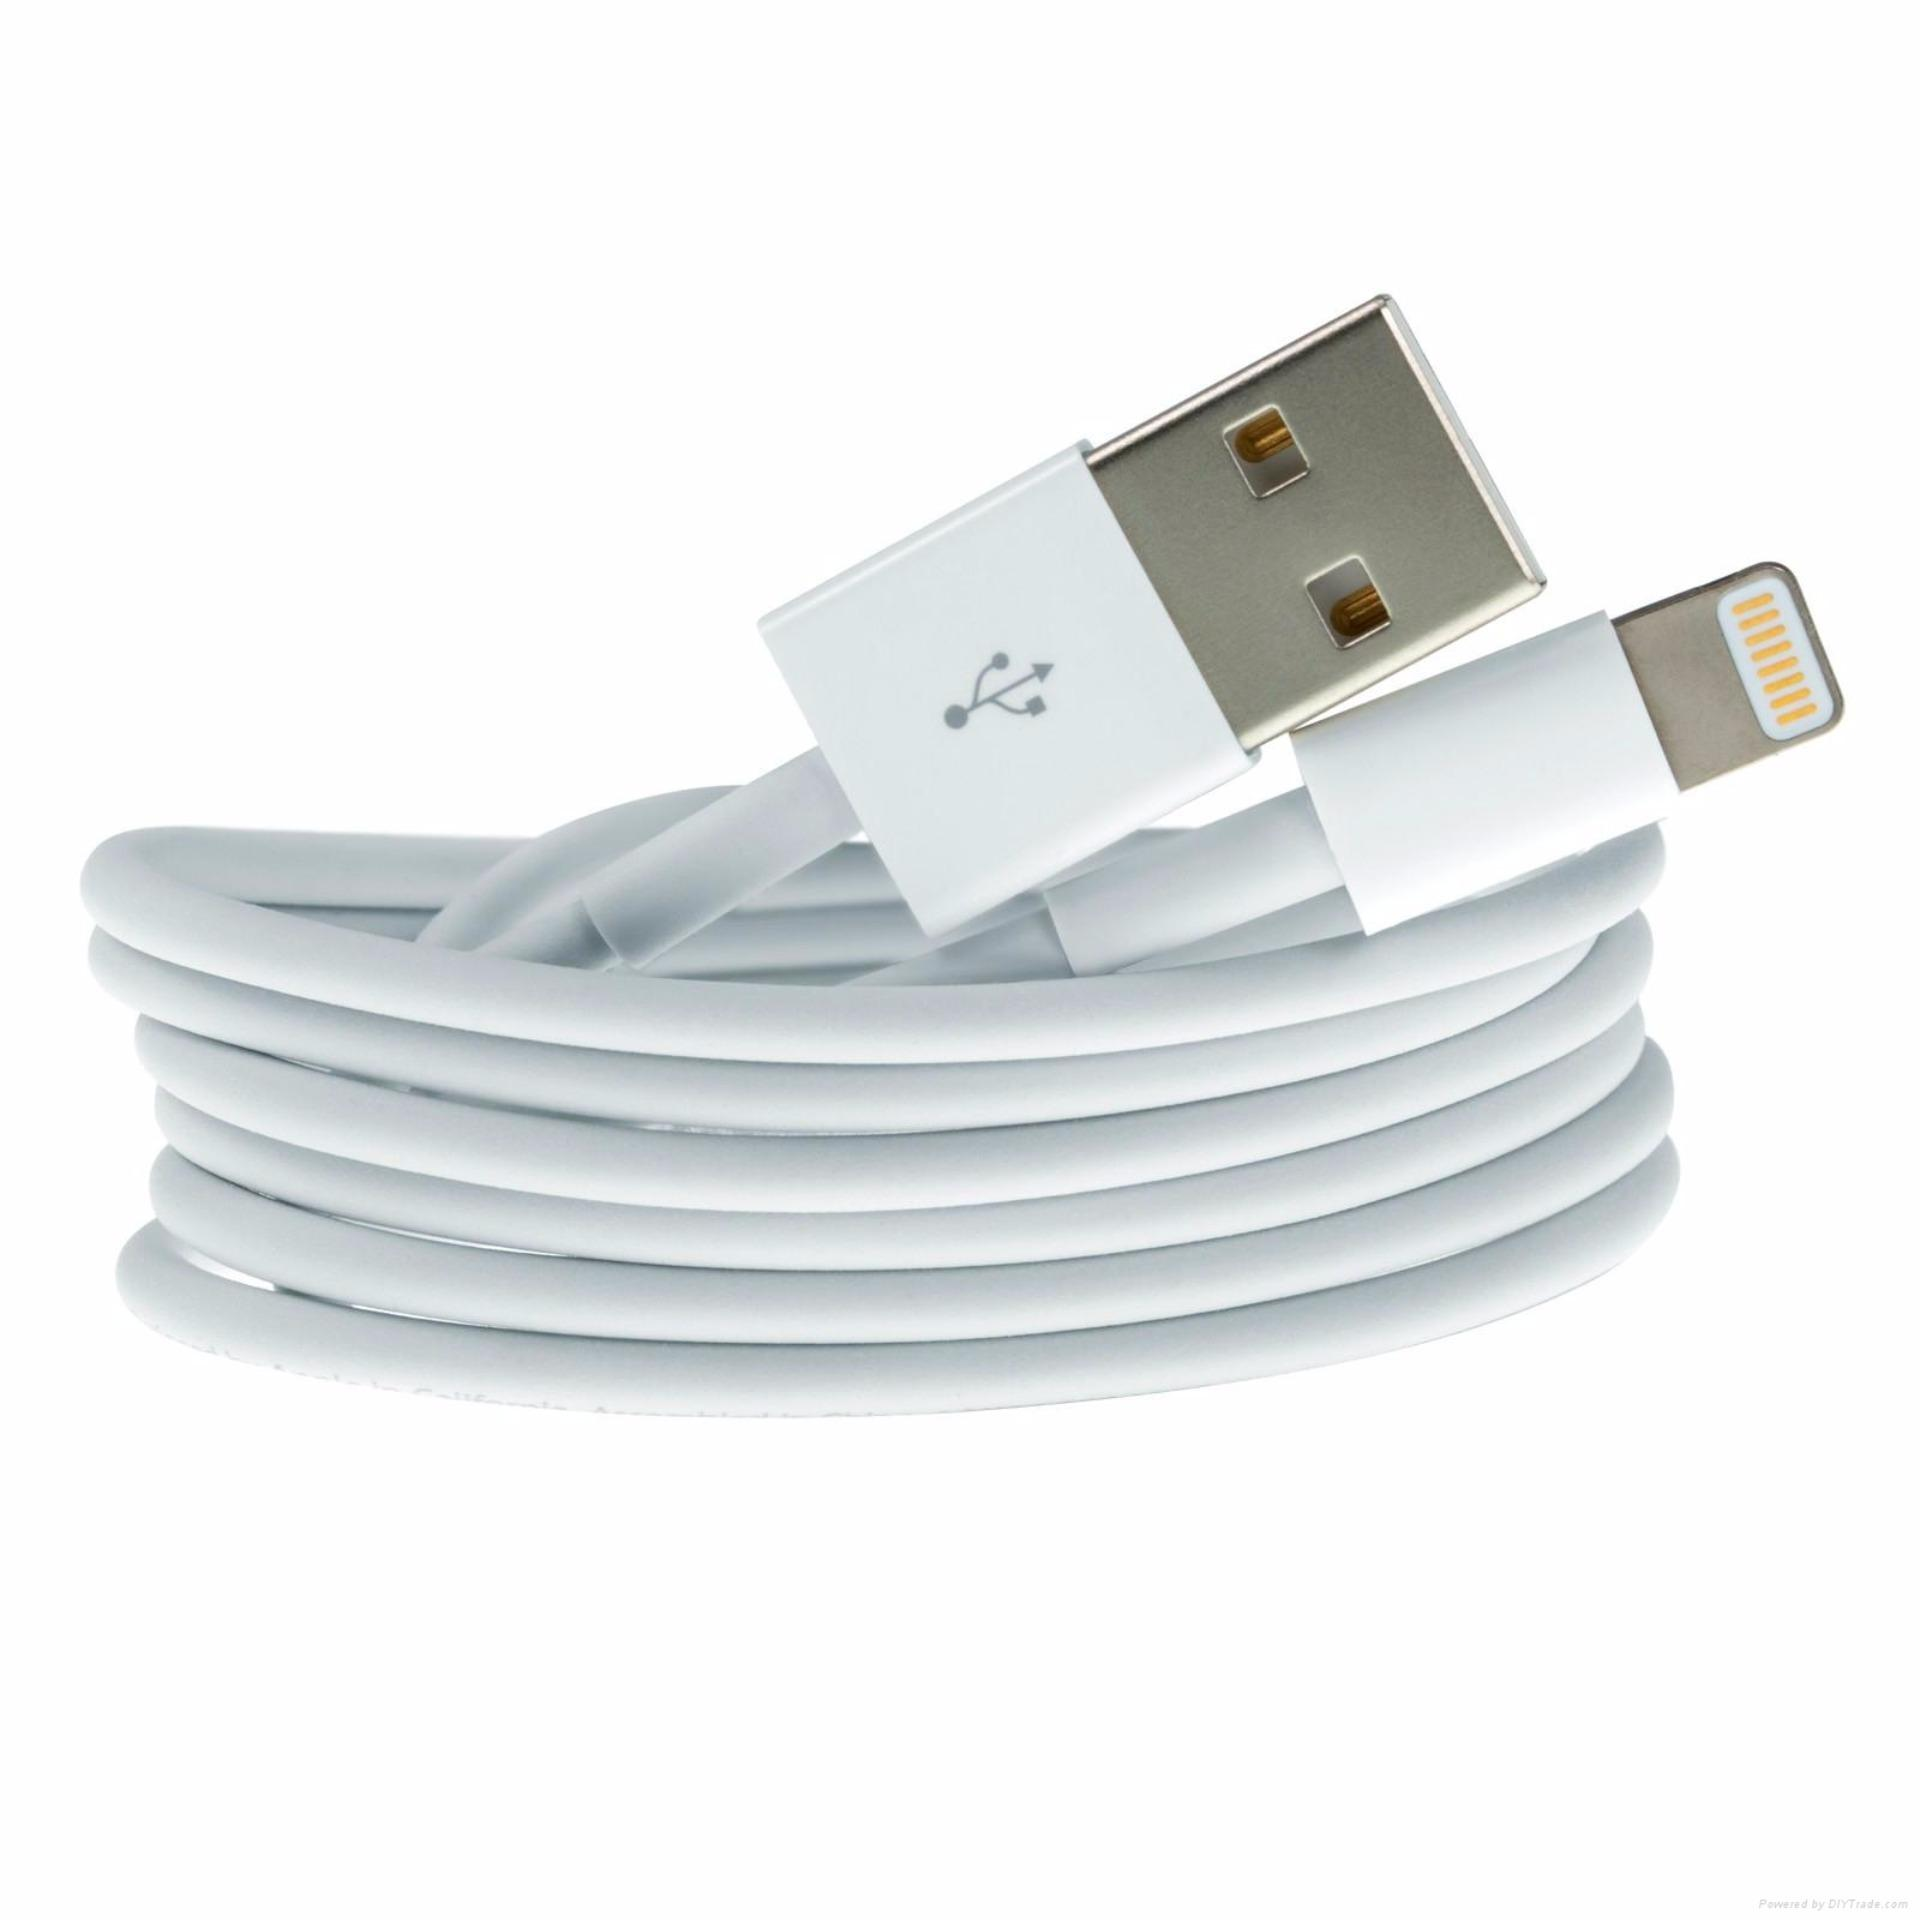 Toko Apple Lighting To Usb Cable Kable Data Iphone 5 Original Lengkap